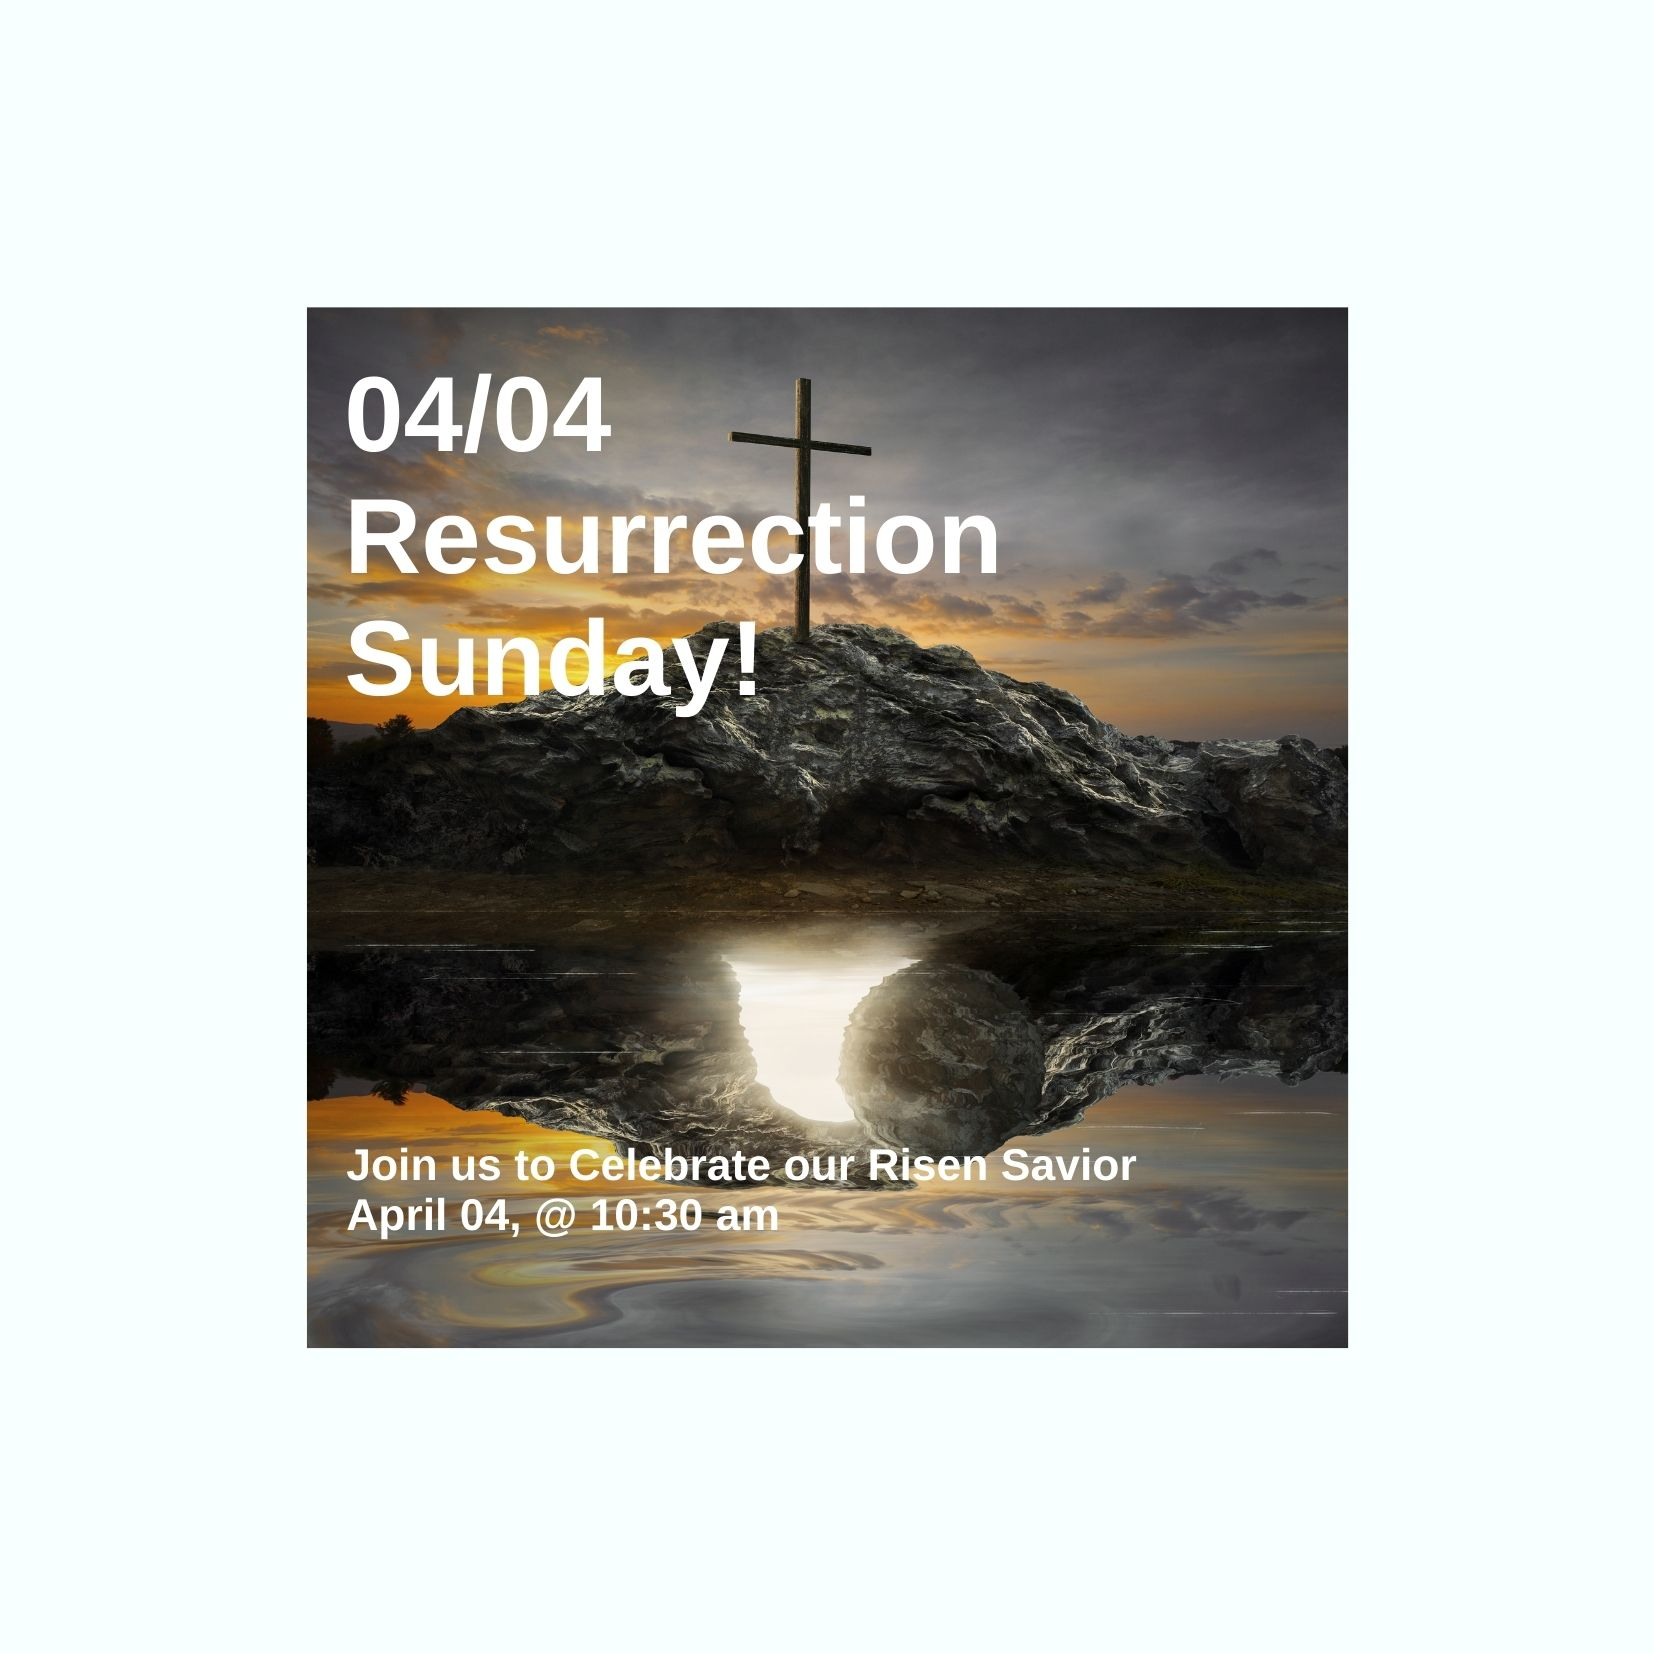 04_04 Resurrection Sunday!.jpg